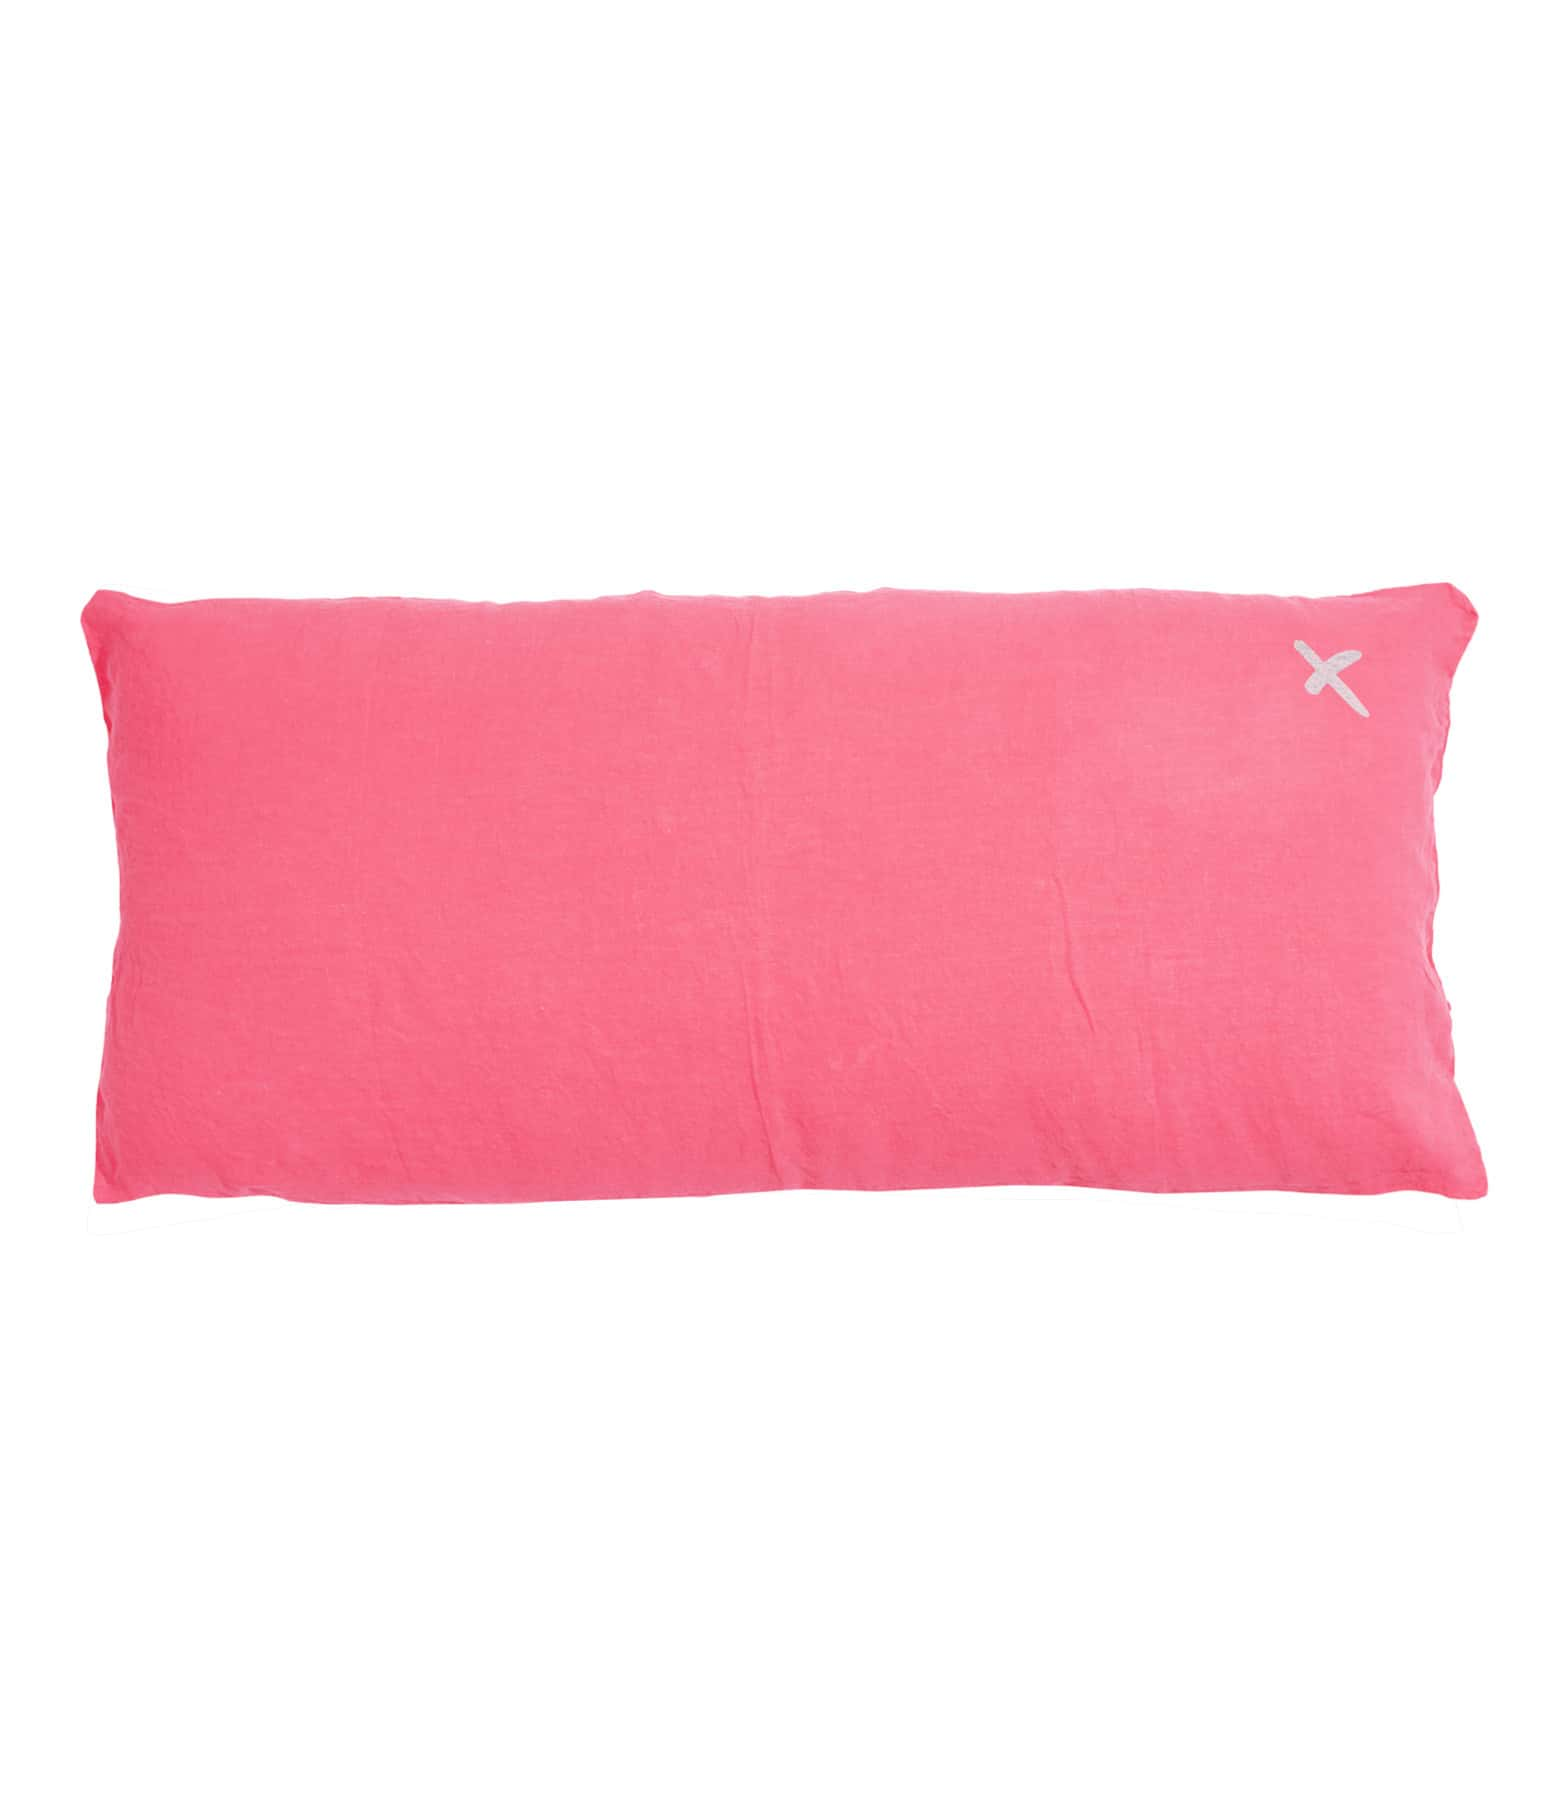 BED AND PHILOSOPHY - Coussin Lovers Lin Rose Fluo Croix Argenté